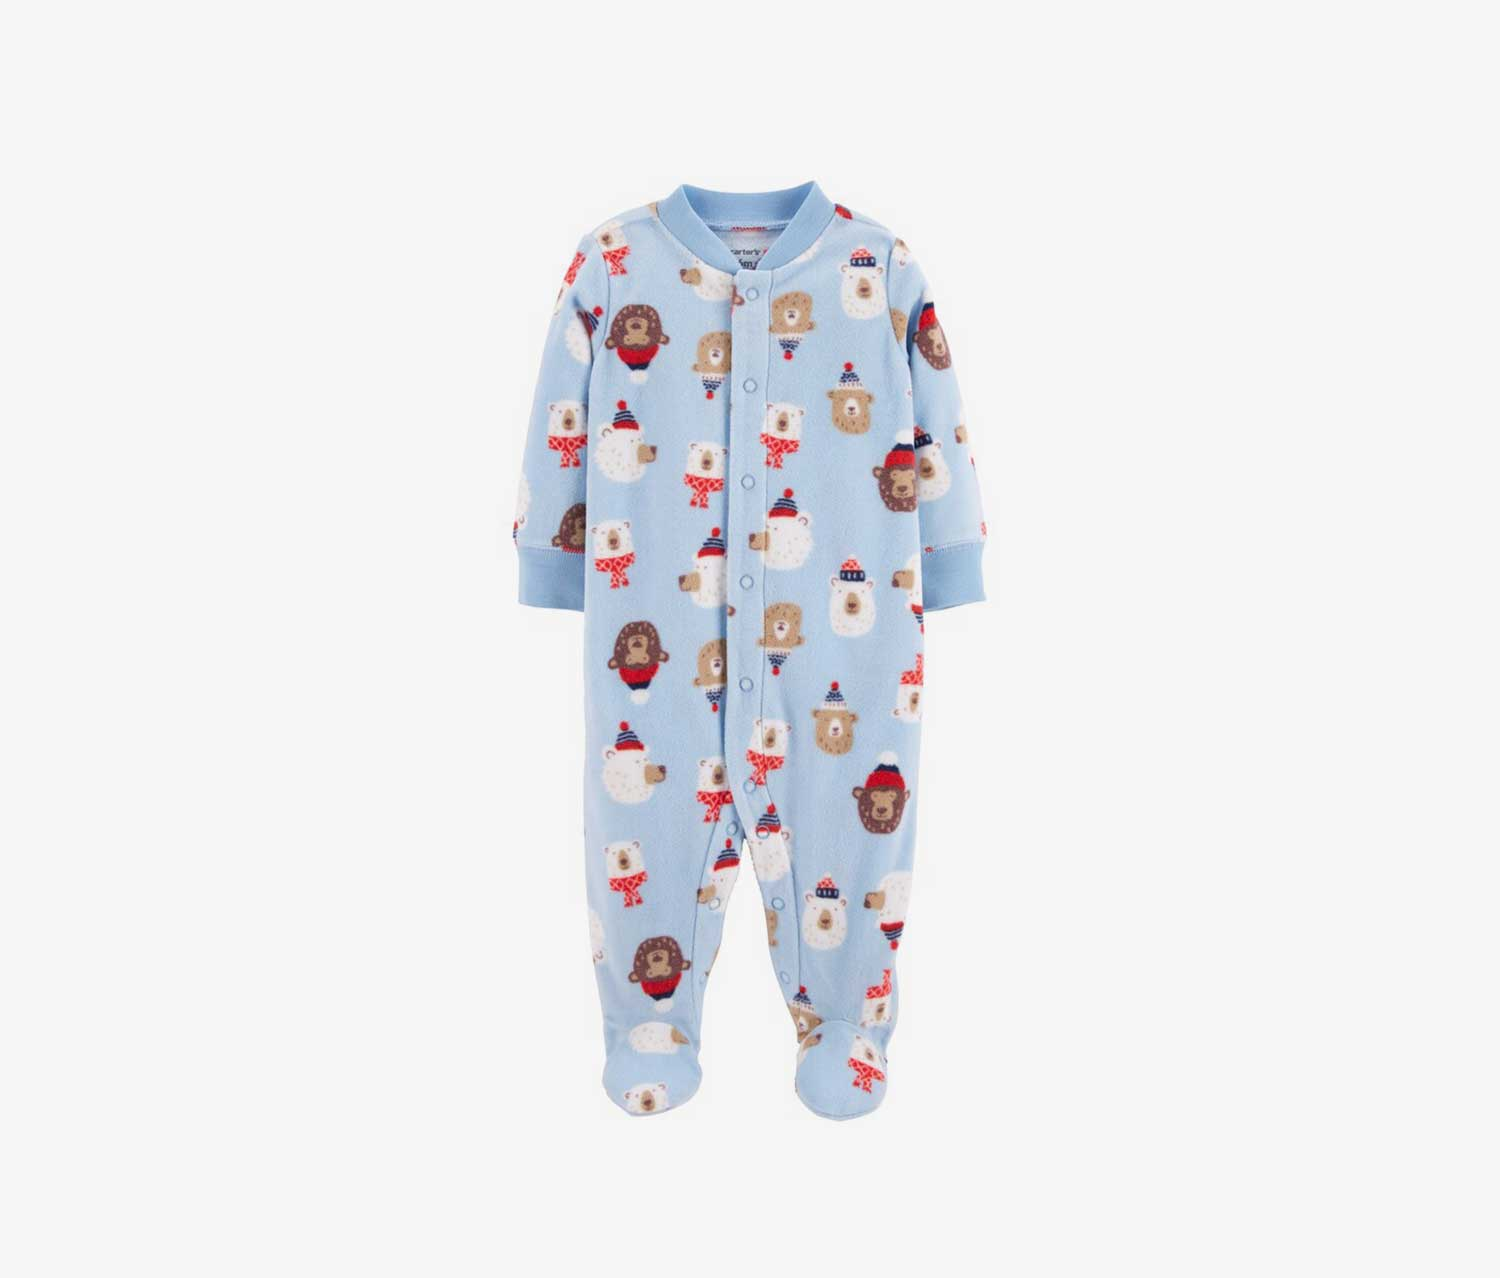 Bonnie Baby Baby Boys Coveralls and Short Sets